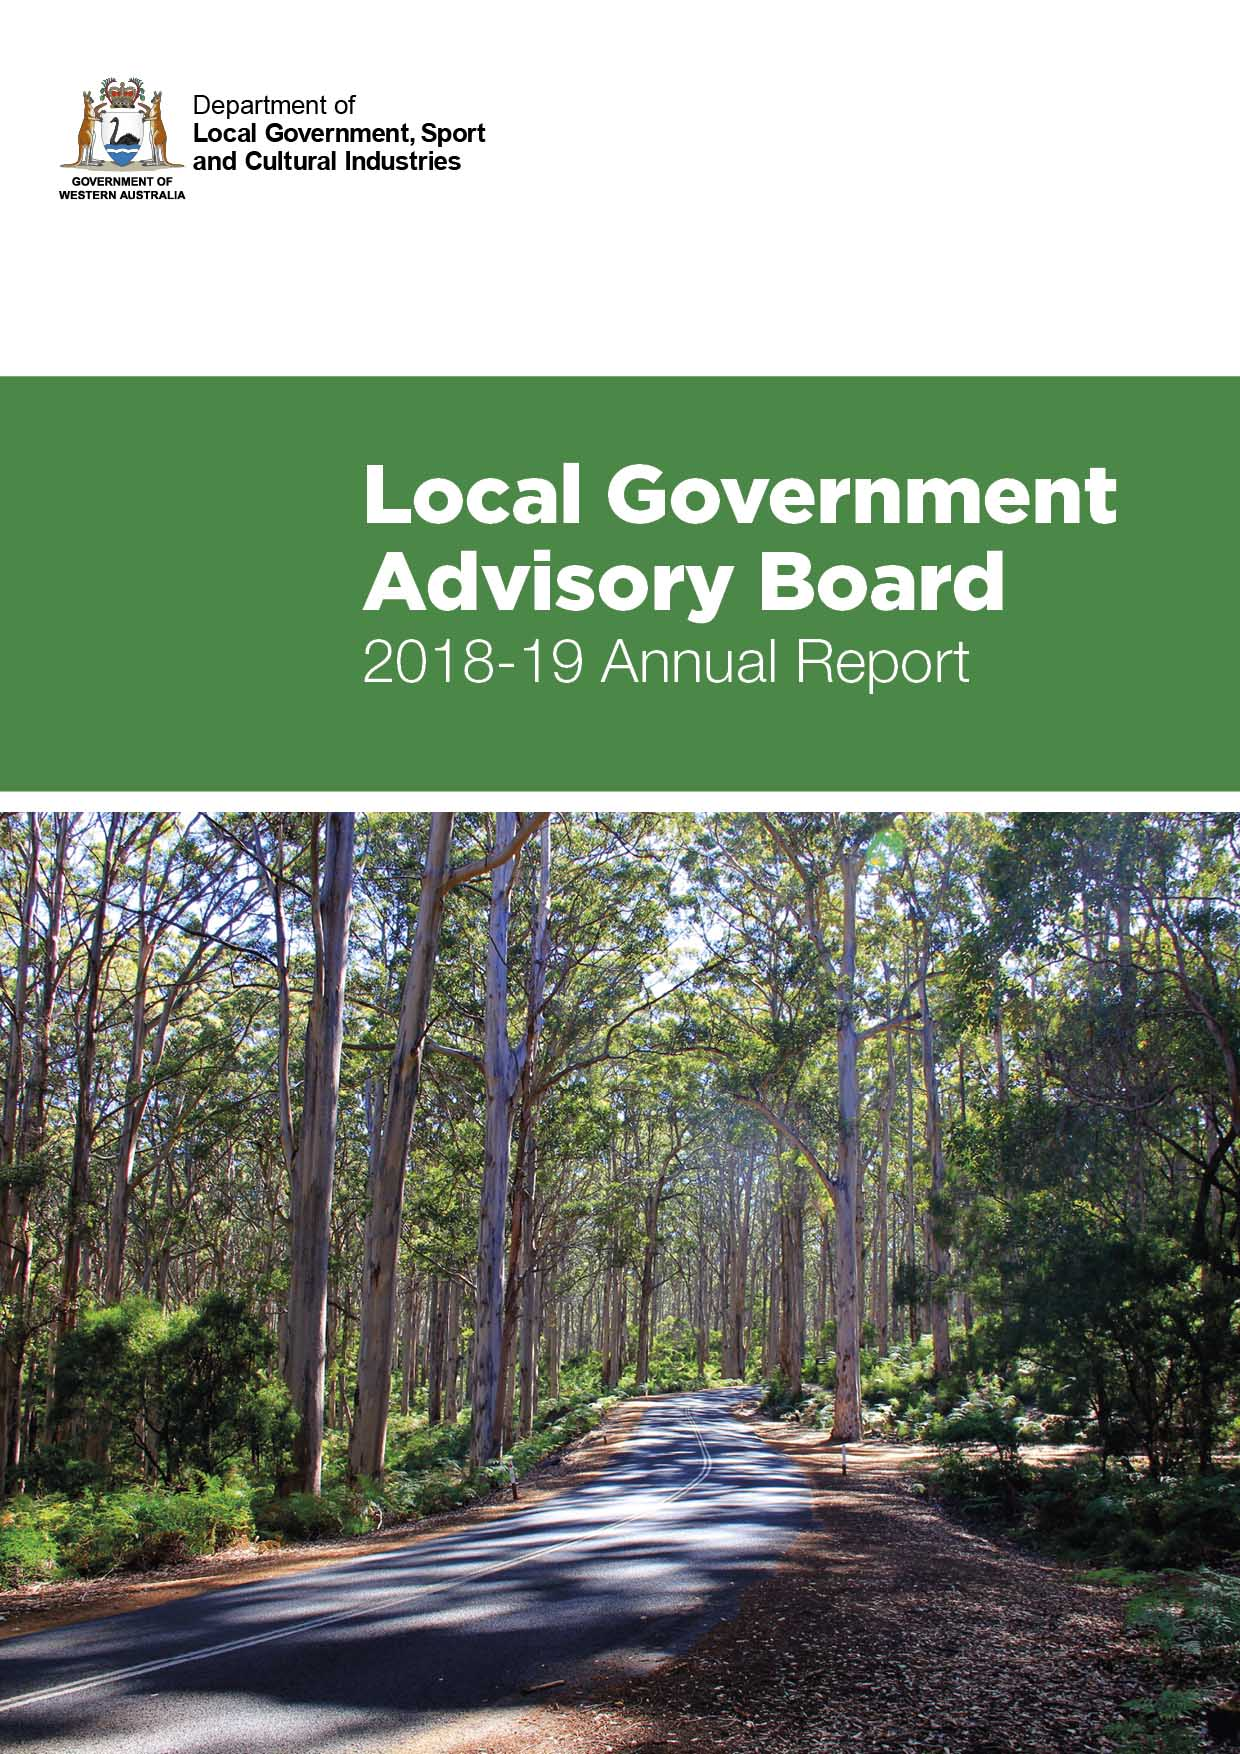 Local Government Advisory Board Annual Report 2018-19